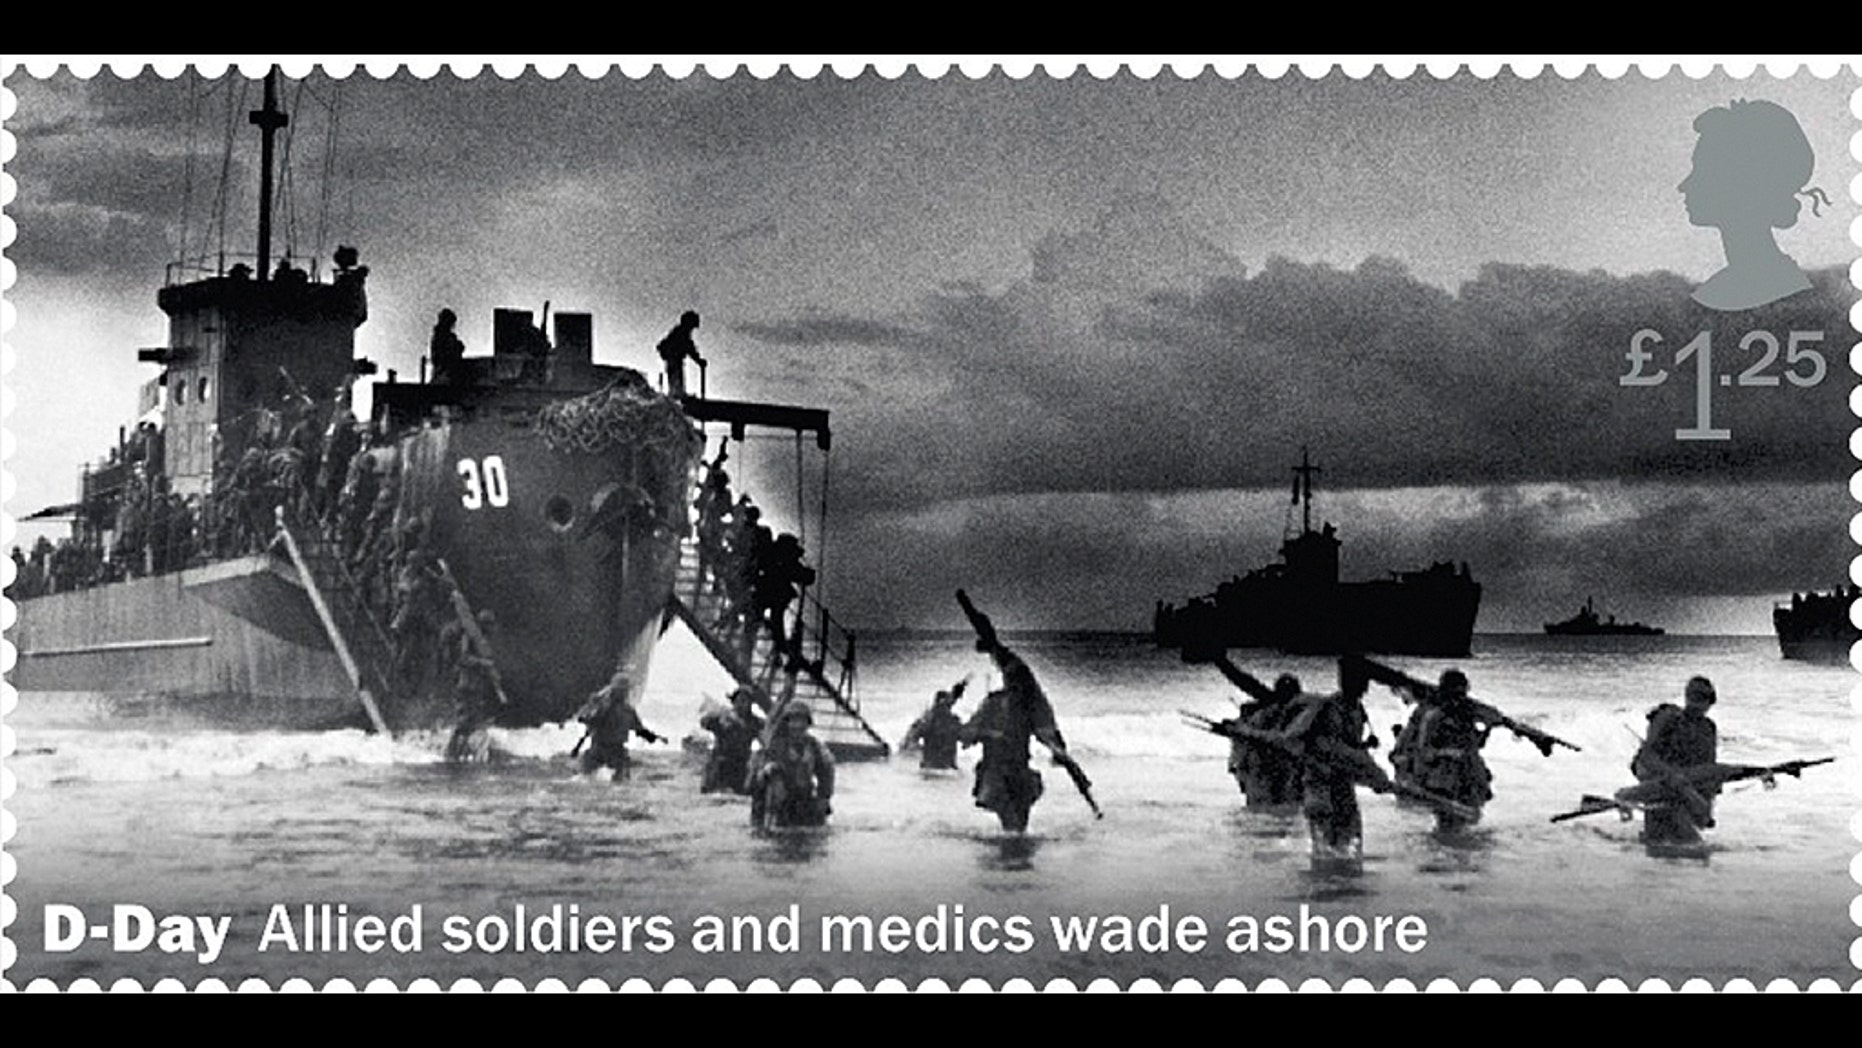 Britain's postal service issued a D-Day commemorative stamp that showed U.S. troops landing in what was Dutch New Guinea--8,500 miles from France.